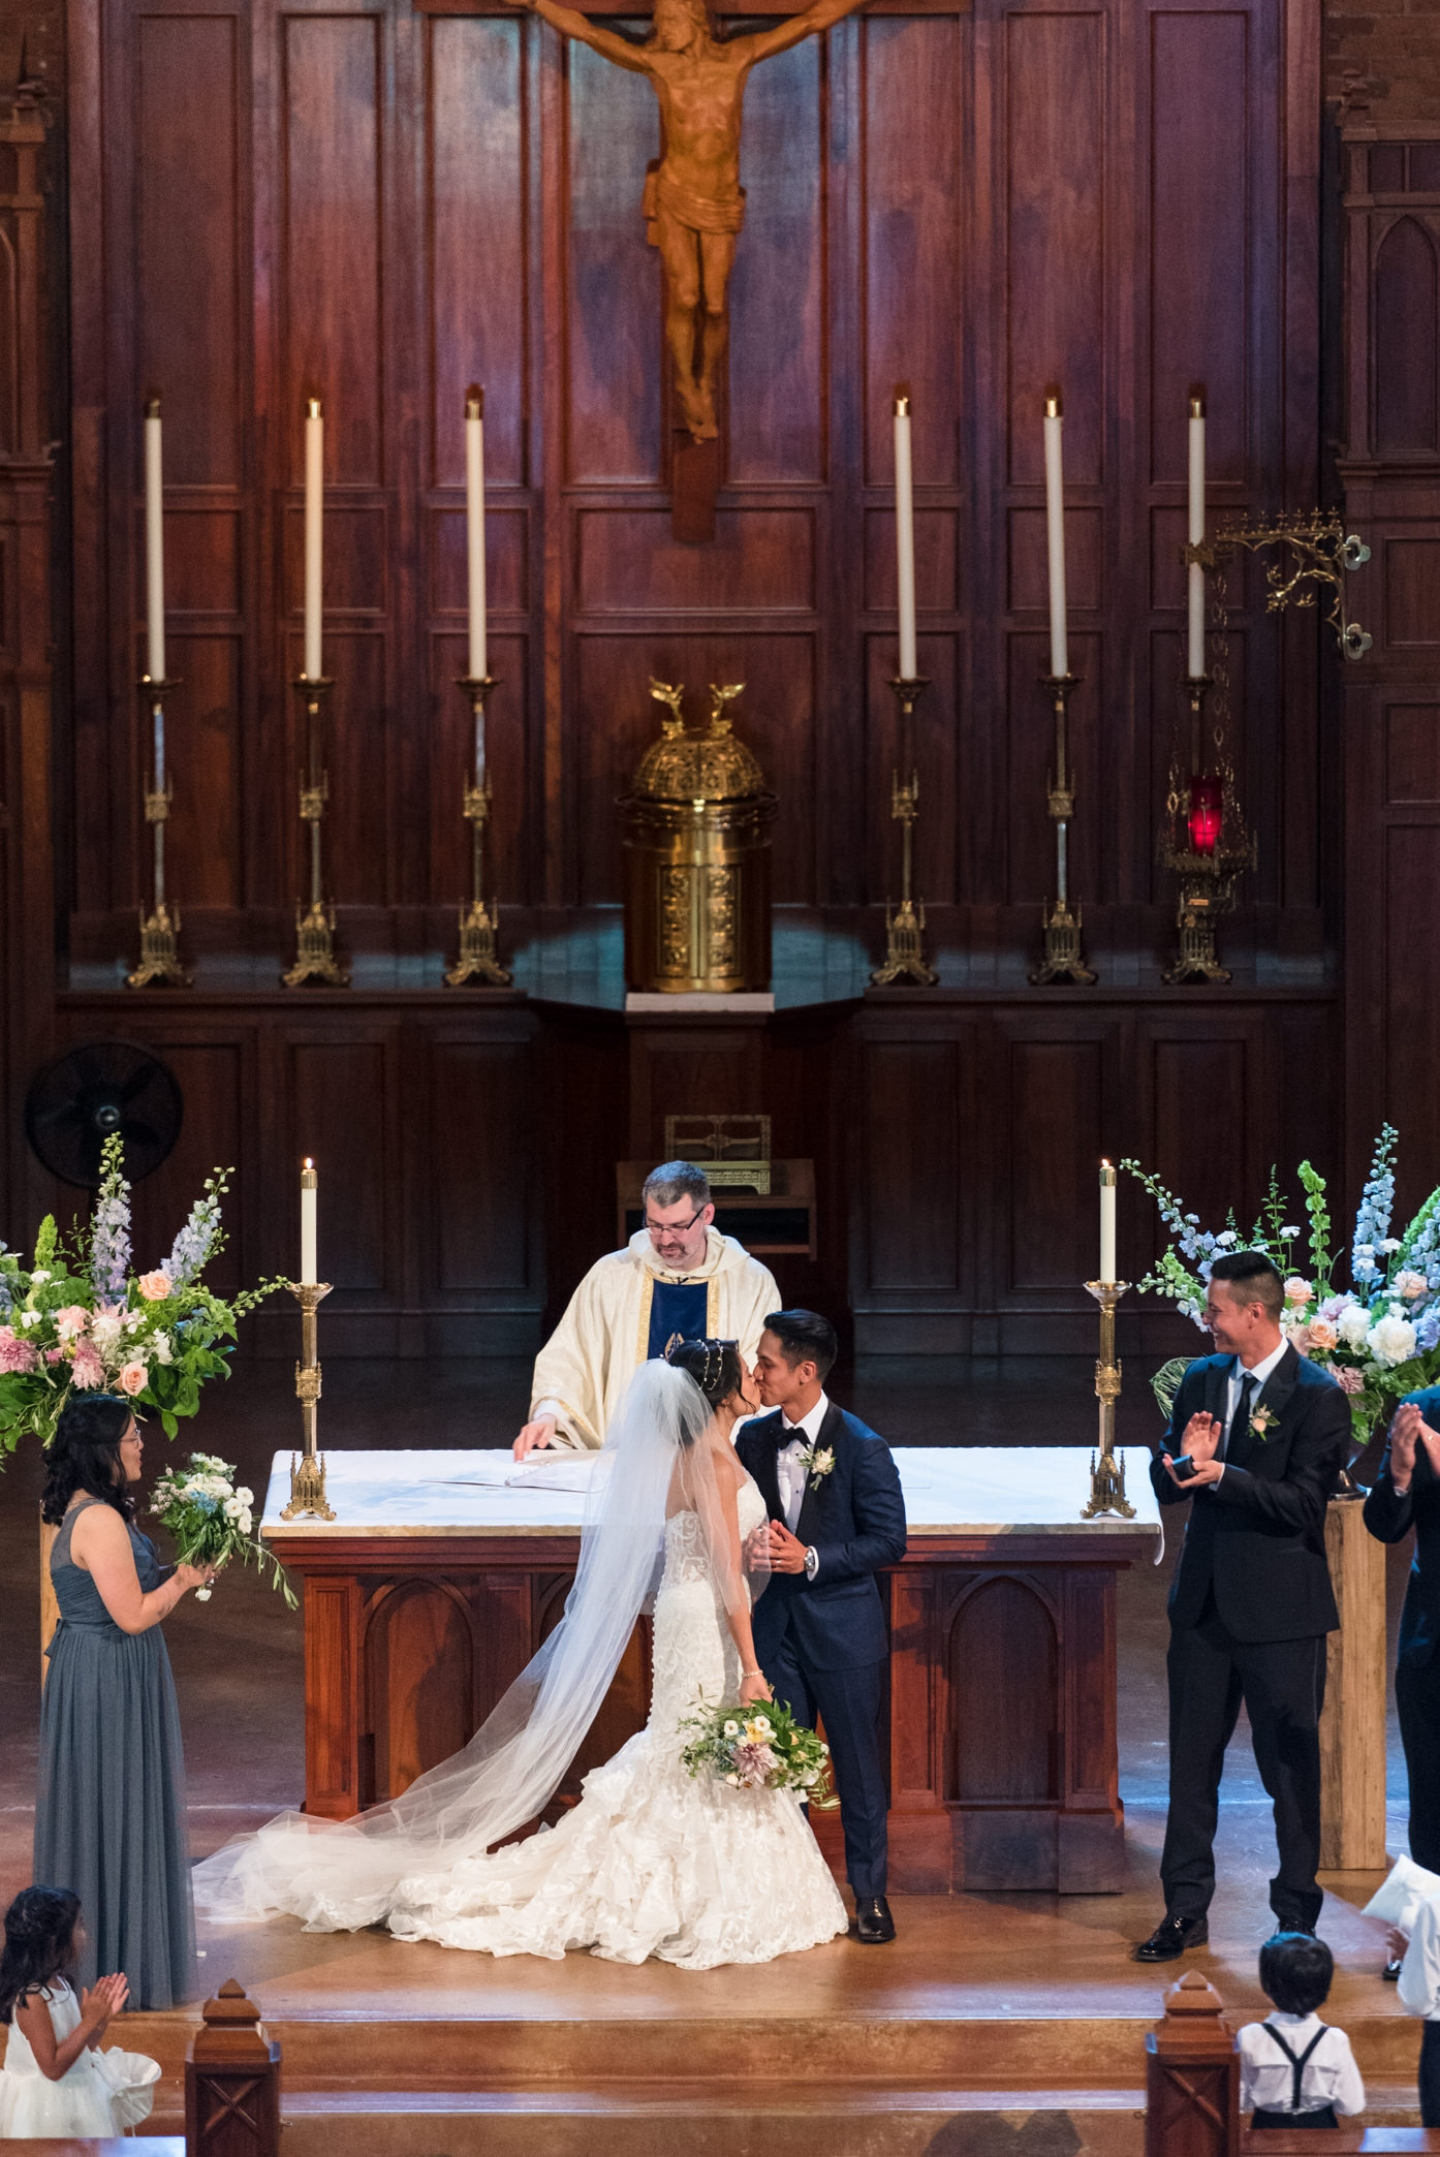 Kim & Allen - July 8, 2017Blessed Sacrament